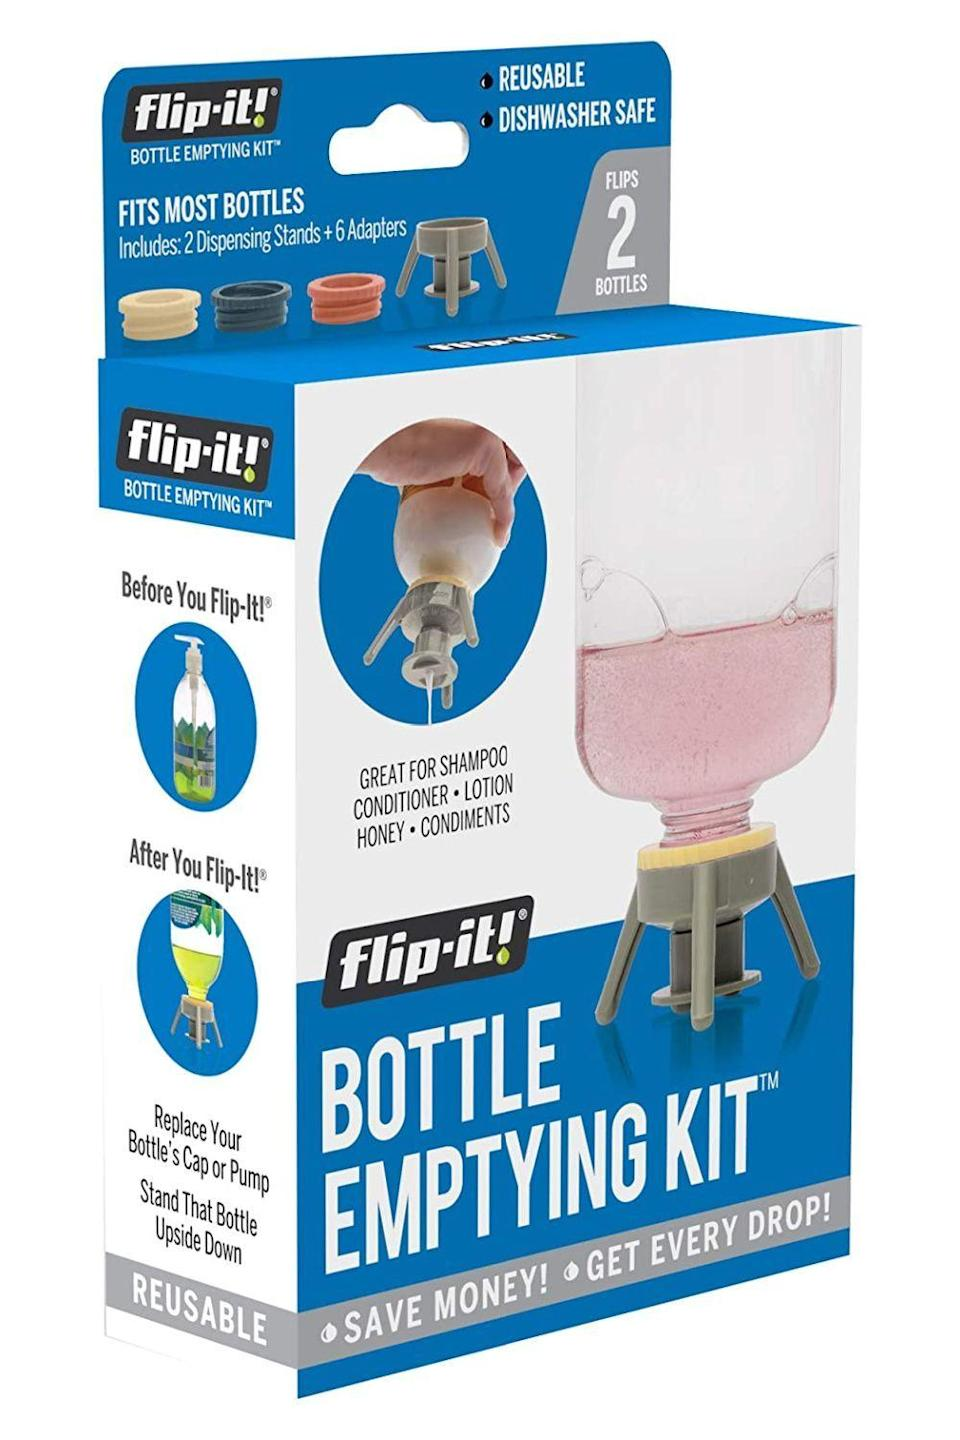 """<p><strong>Flip-It!</strong></p><p>amazon.com</p><p><strong>$13.99</strong></p><p><a href=""""https://www.amazon.com/dp/B079C4B8V8?tag=syn-yahoo-20&ascsubtag=%5Bartid%7C10049.g.33904719%5Bsrc%7Cyahoo-us"""" rel=""""nofollow noopener"""" target=""""_blank"""" data-ylk=""""slk:shop"""" class=""""link rapid-noclick-resp"""">shop</a></p><p>Throwing away the last bit of your expensive <a href=""""https://www.cosmopolitan.com/style-beauty/beauty/g2149/best-shampoo-conditioner/"""" rel=""""nofollow noopener"""" target=""""_blank"""" data-ylk=""""slk:shampoo and conditioner"""" class=""""link rapid-noclick-resp"""">shampoo and conditioner</a> is *heartbreaking.* While flipping your products over is the oldest trick in the book, if your bottle has a pump dispenser or a weirdly small lid, get these lid props to easily store your products upside down.</p>"""